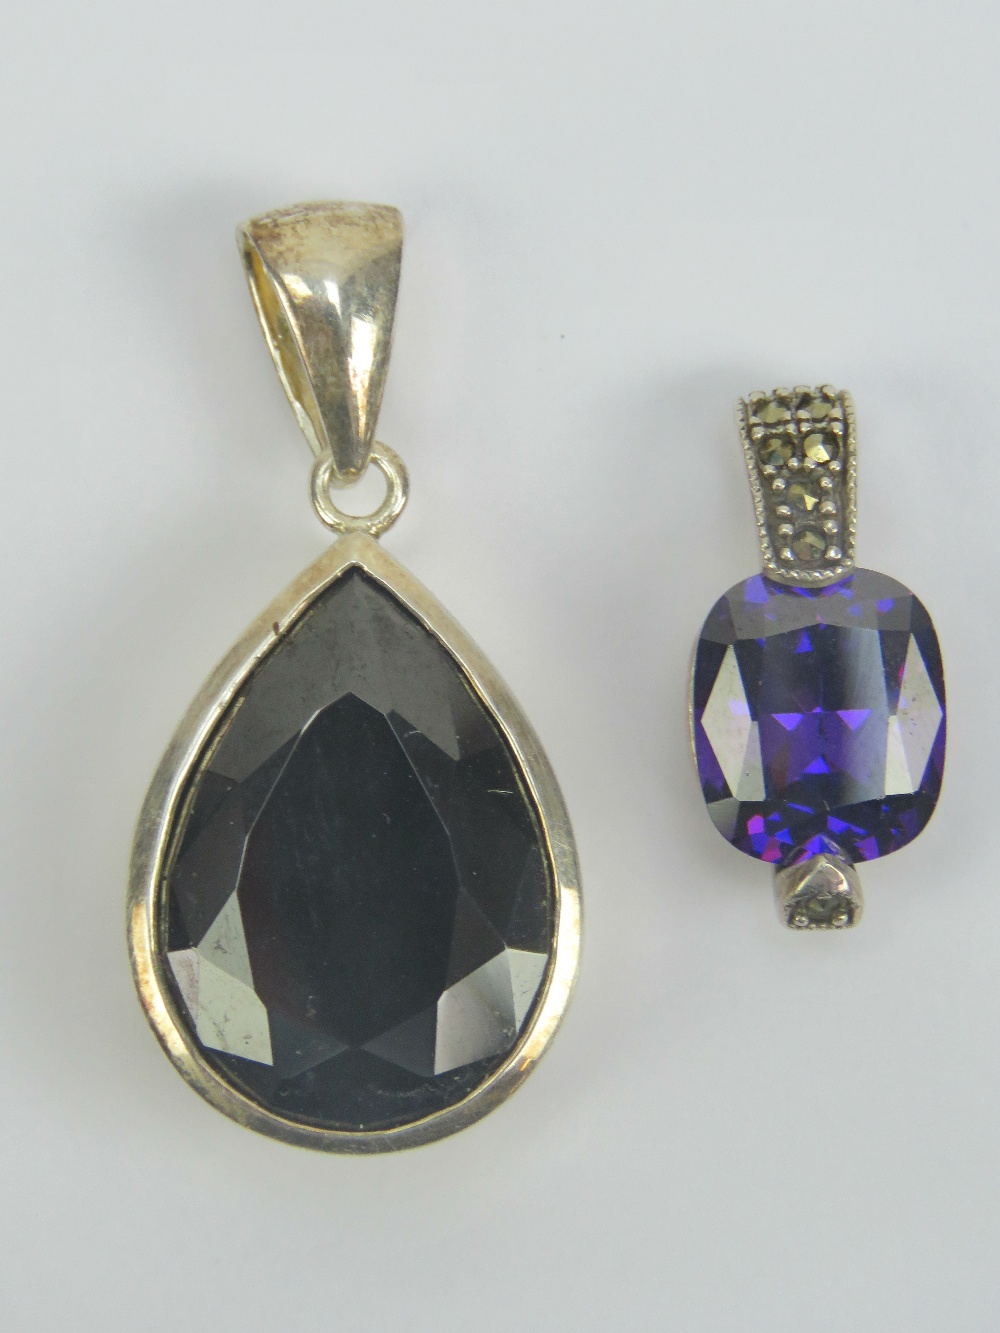 Lot 102 - A silver pendant having large central faceted amethyst and bale set with marcasites, stamped 925, 2.